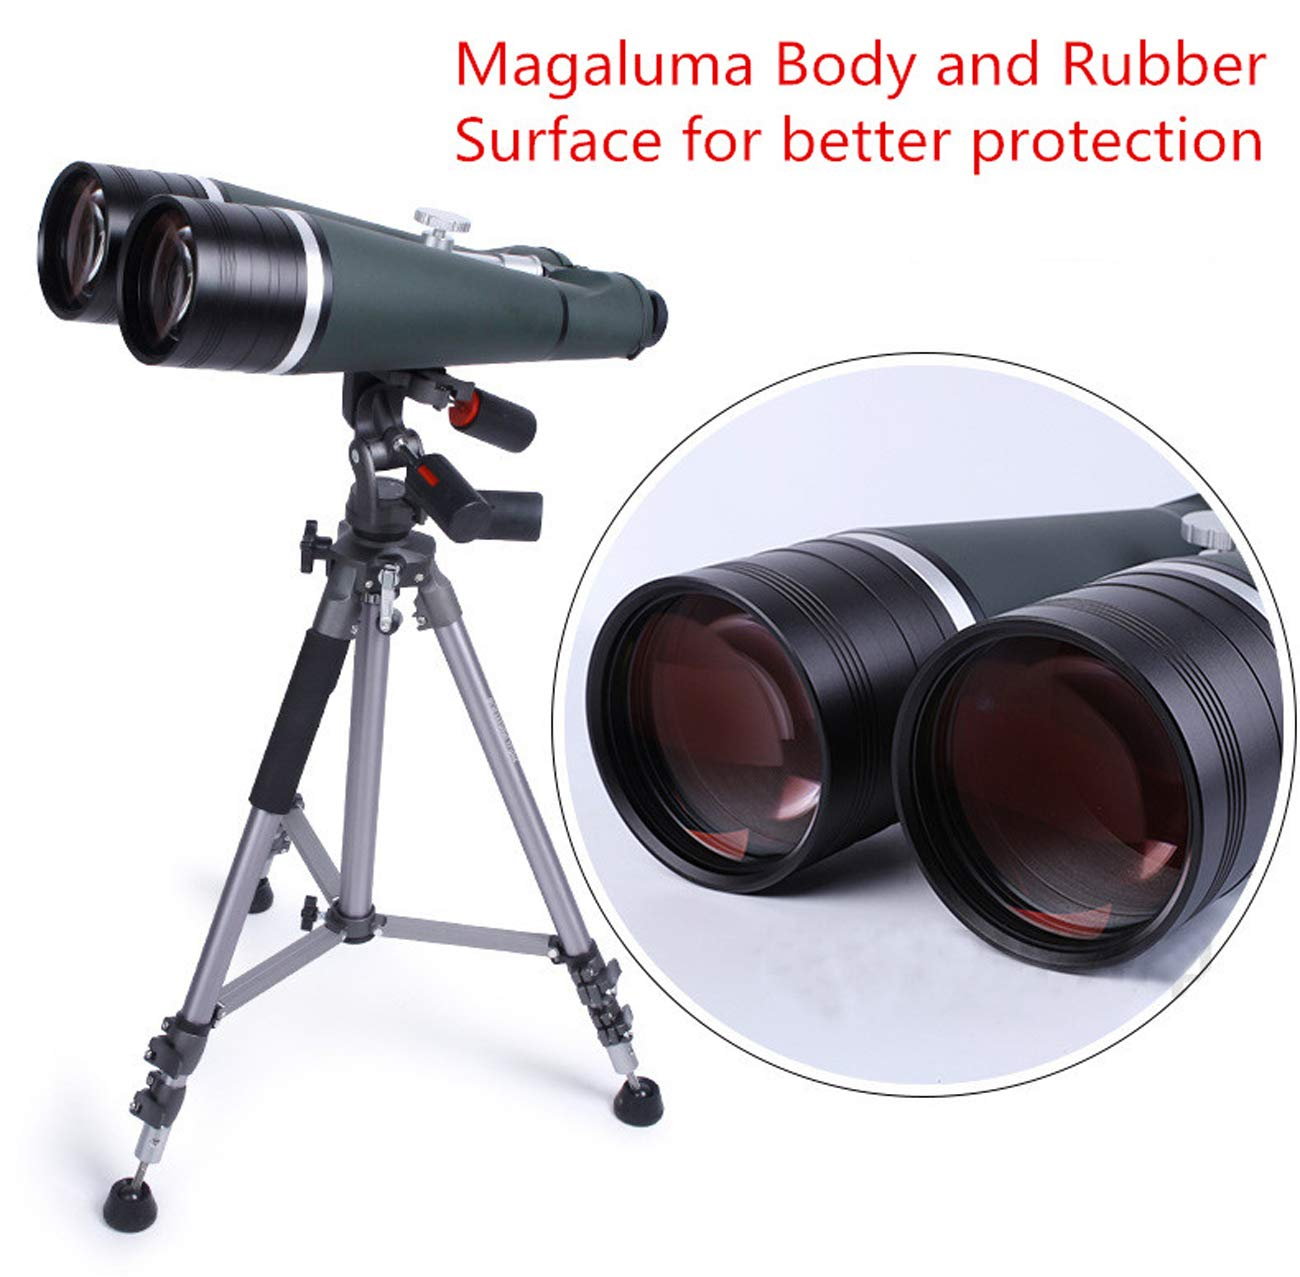 25X100 Binoculars Professional Astronomy Telescopes LLL Night Vision Waterproof Super HD Binocular with Aluminum Trunk